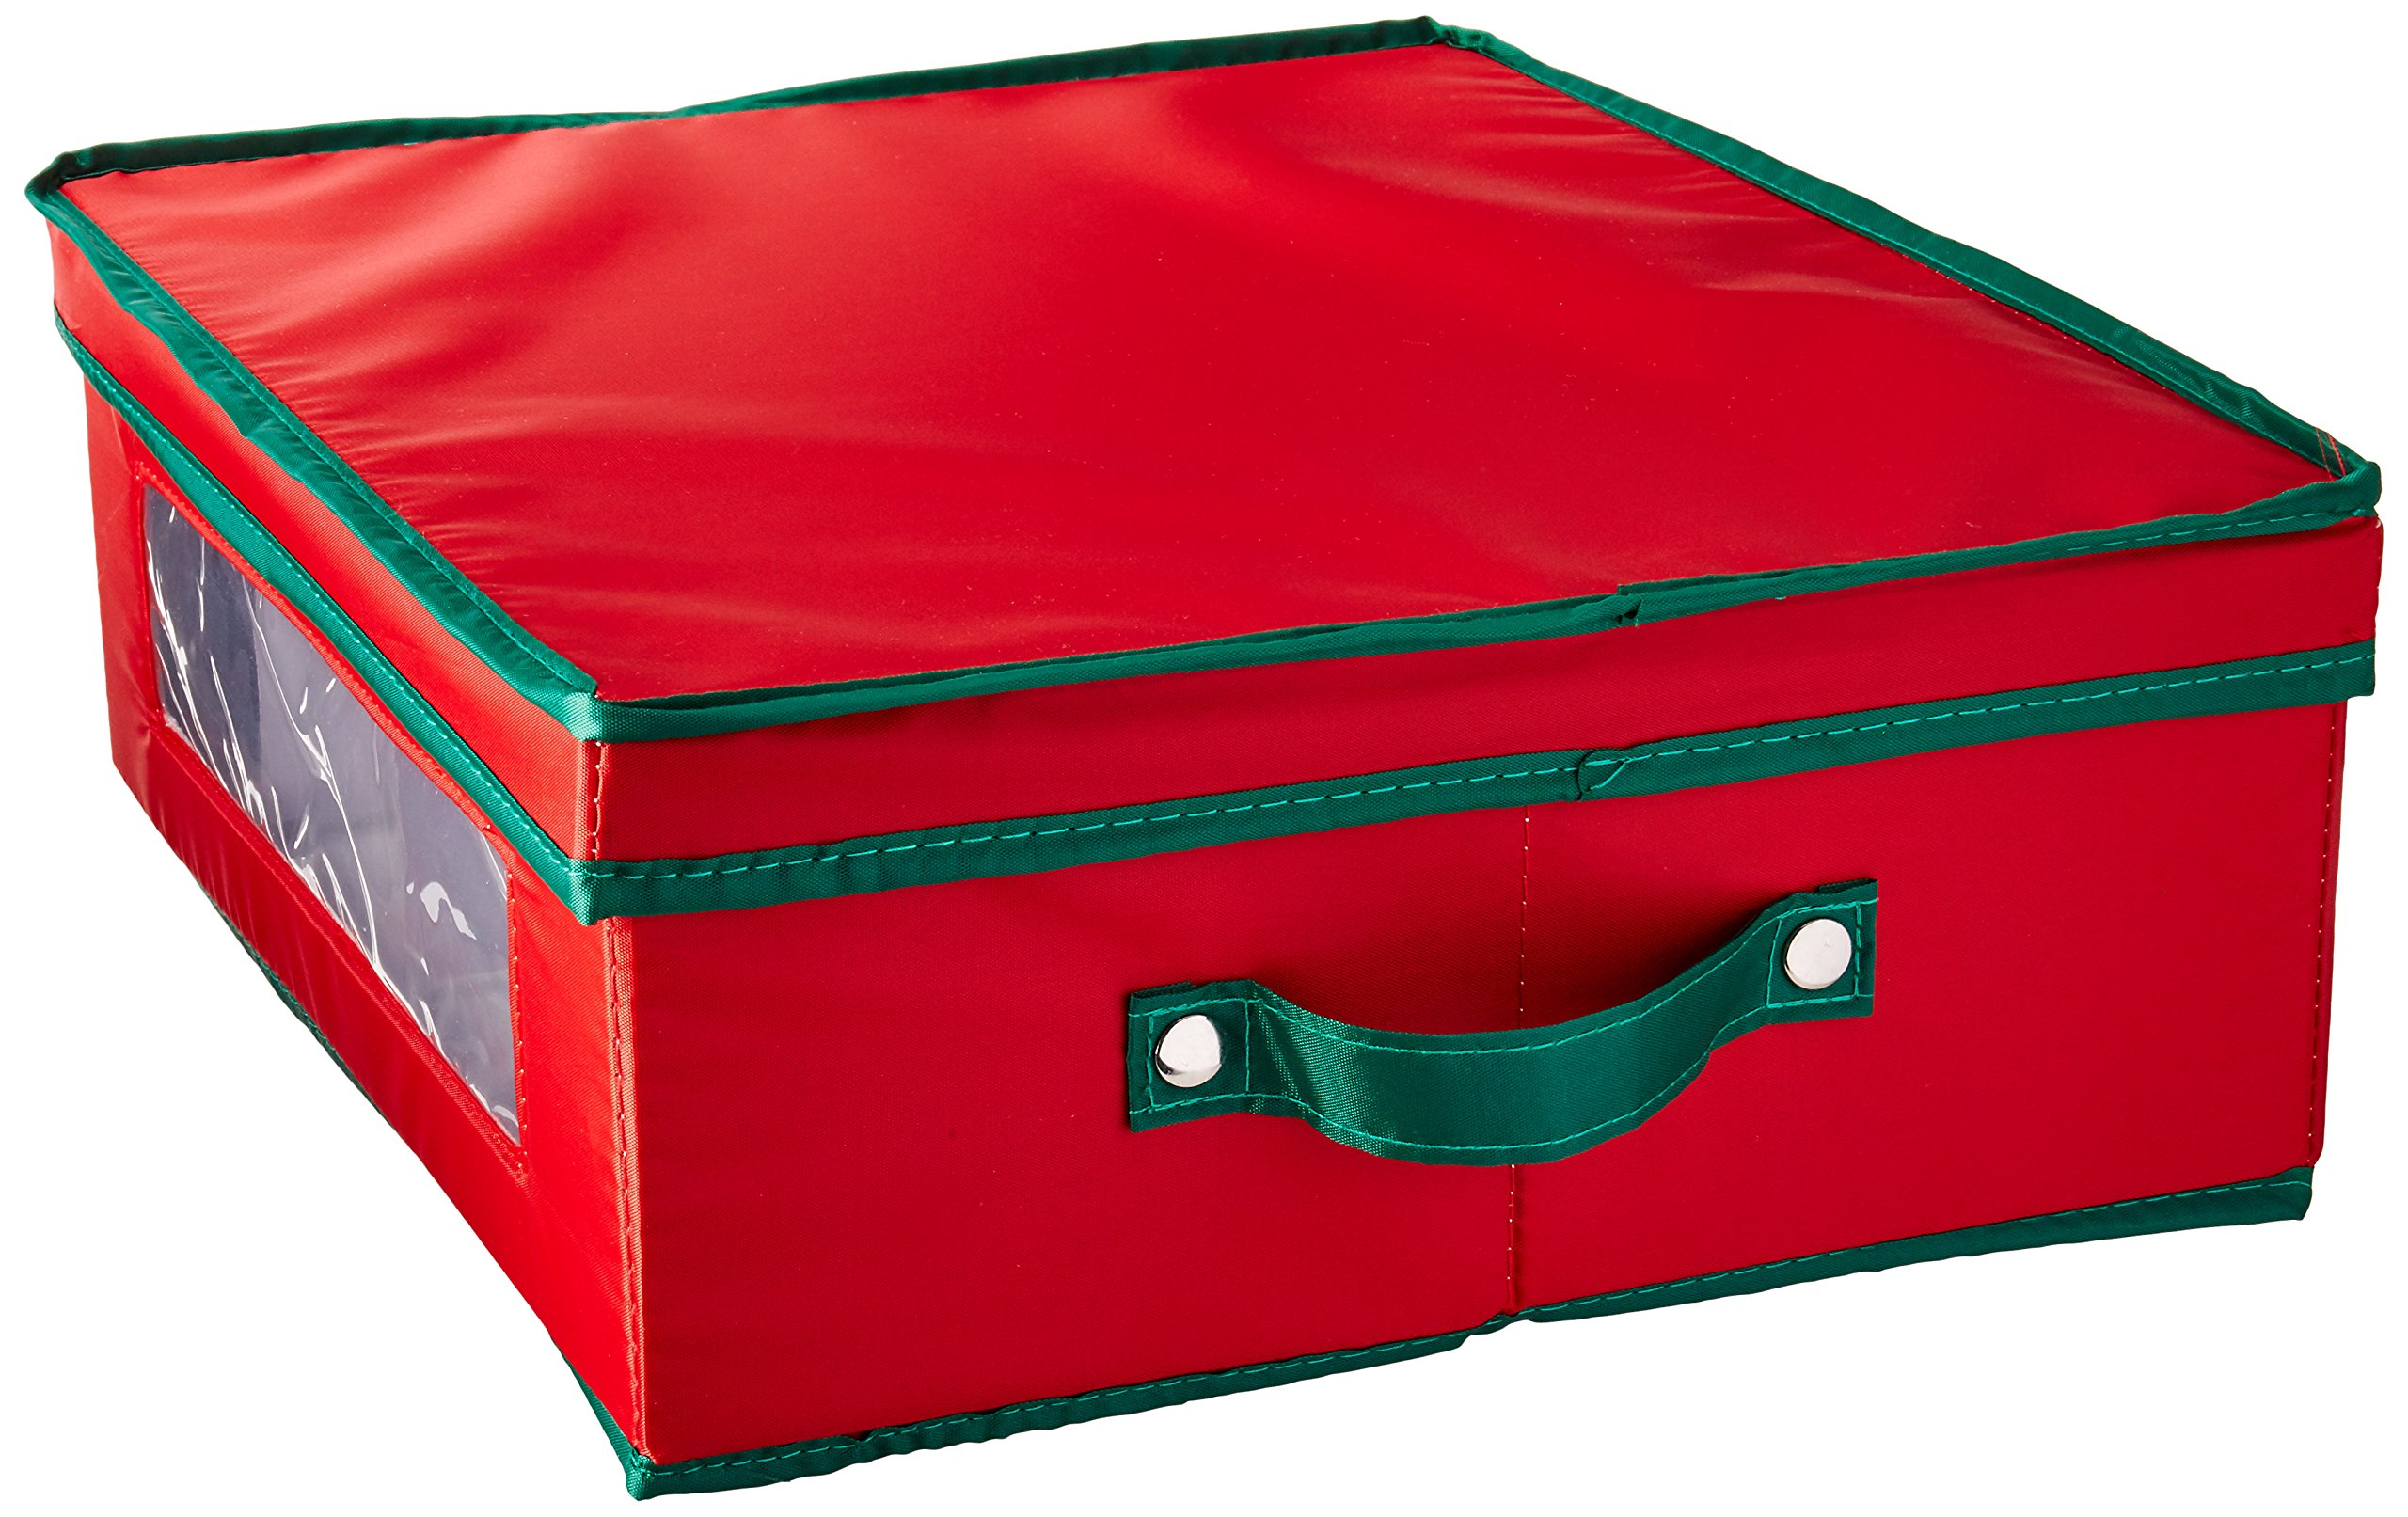 Household Essentials 538RED Holiday China Dinnerware Storage Chest for Coffee Mugs | Removable Lid | Red Canvas with Green Trim